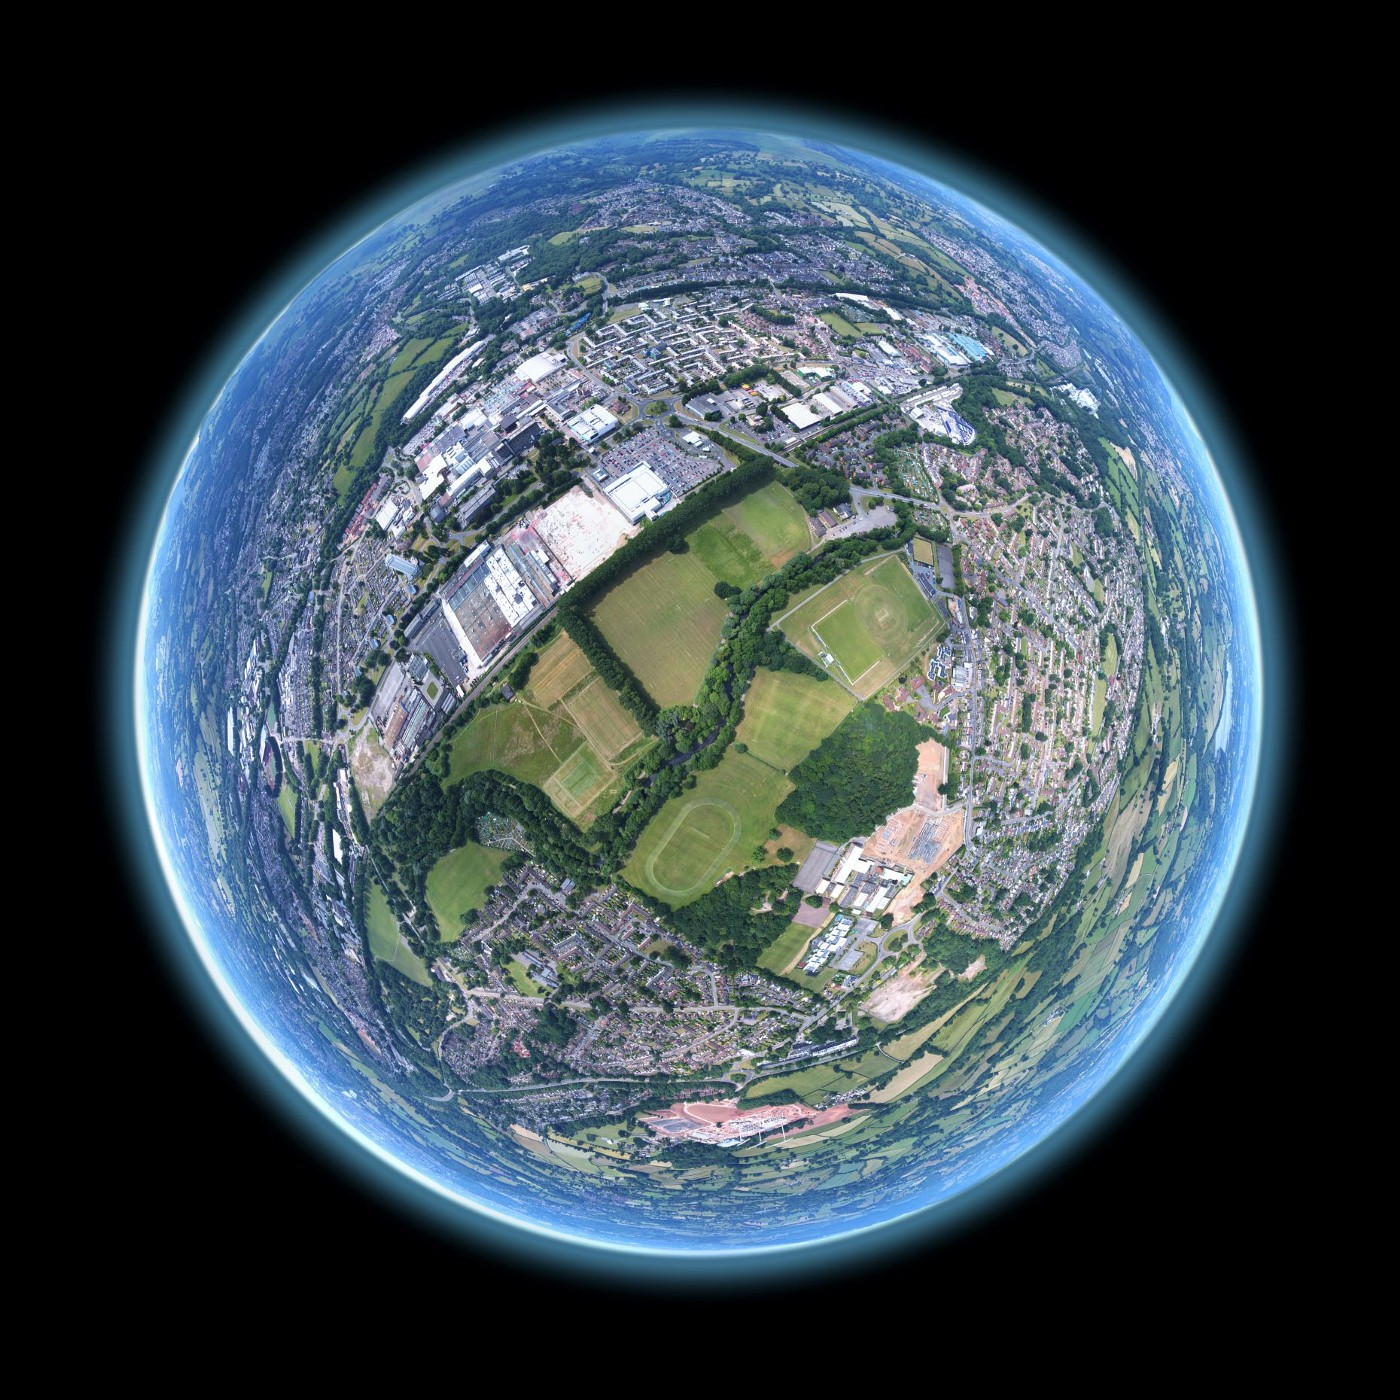 Photo of globe close up view of residential neighborhoods